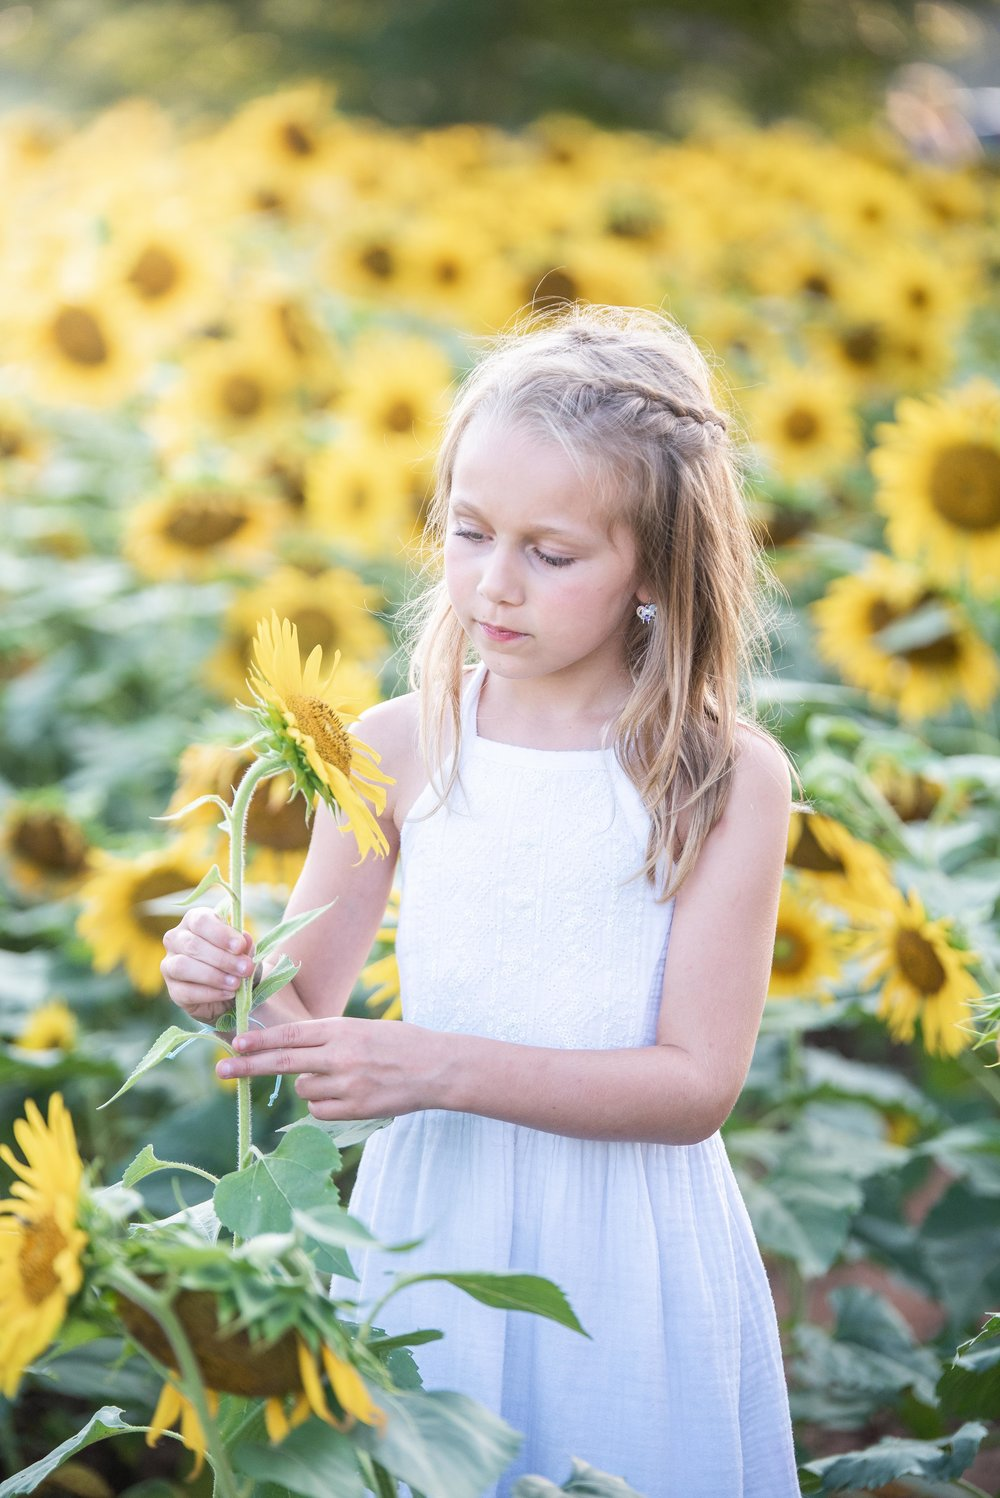 Dogwood Farm - Sunflower Field Photography Session - Sunflower Family Portraits - Fall Family Portraits - Summer Family Portraits - NC Photographer - NC Wedding Photographer - High Point Wedding Photographer -1.jpg